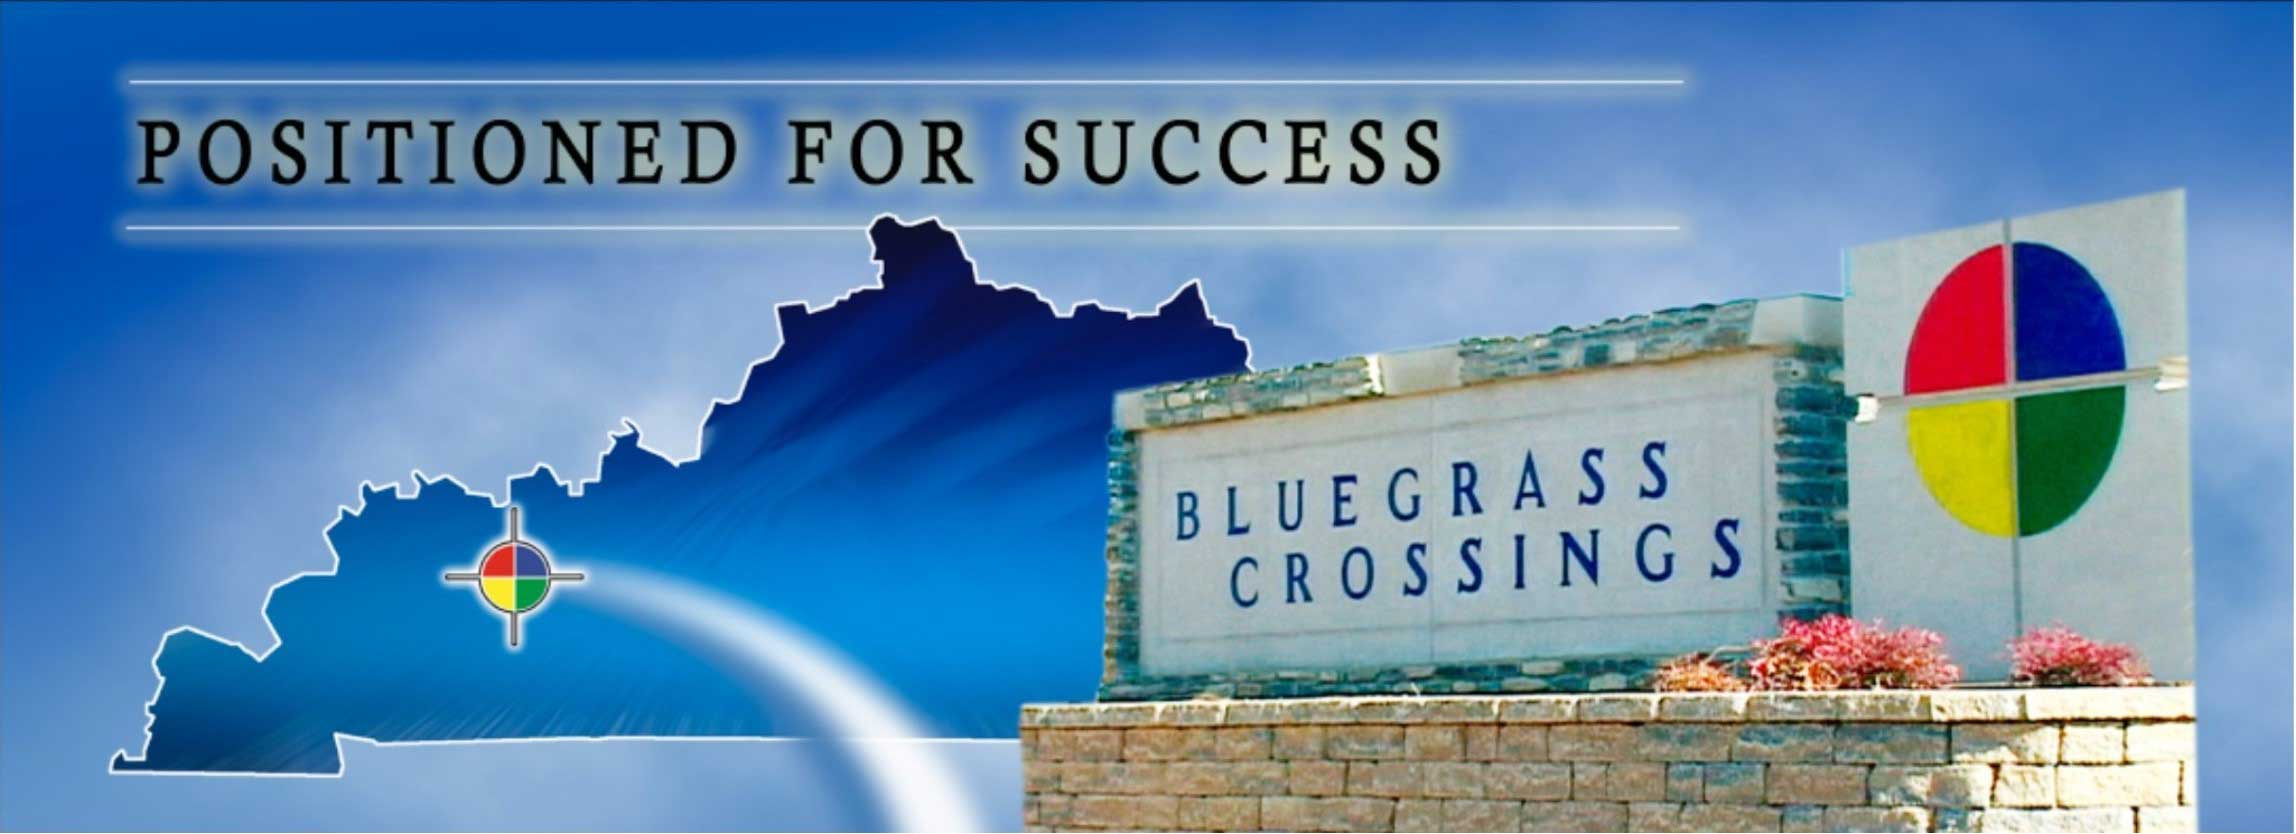 Bluegrass Crossings